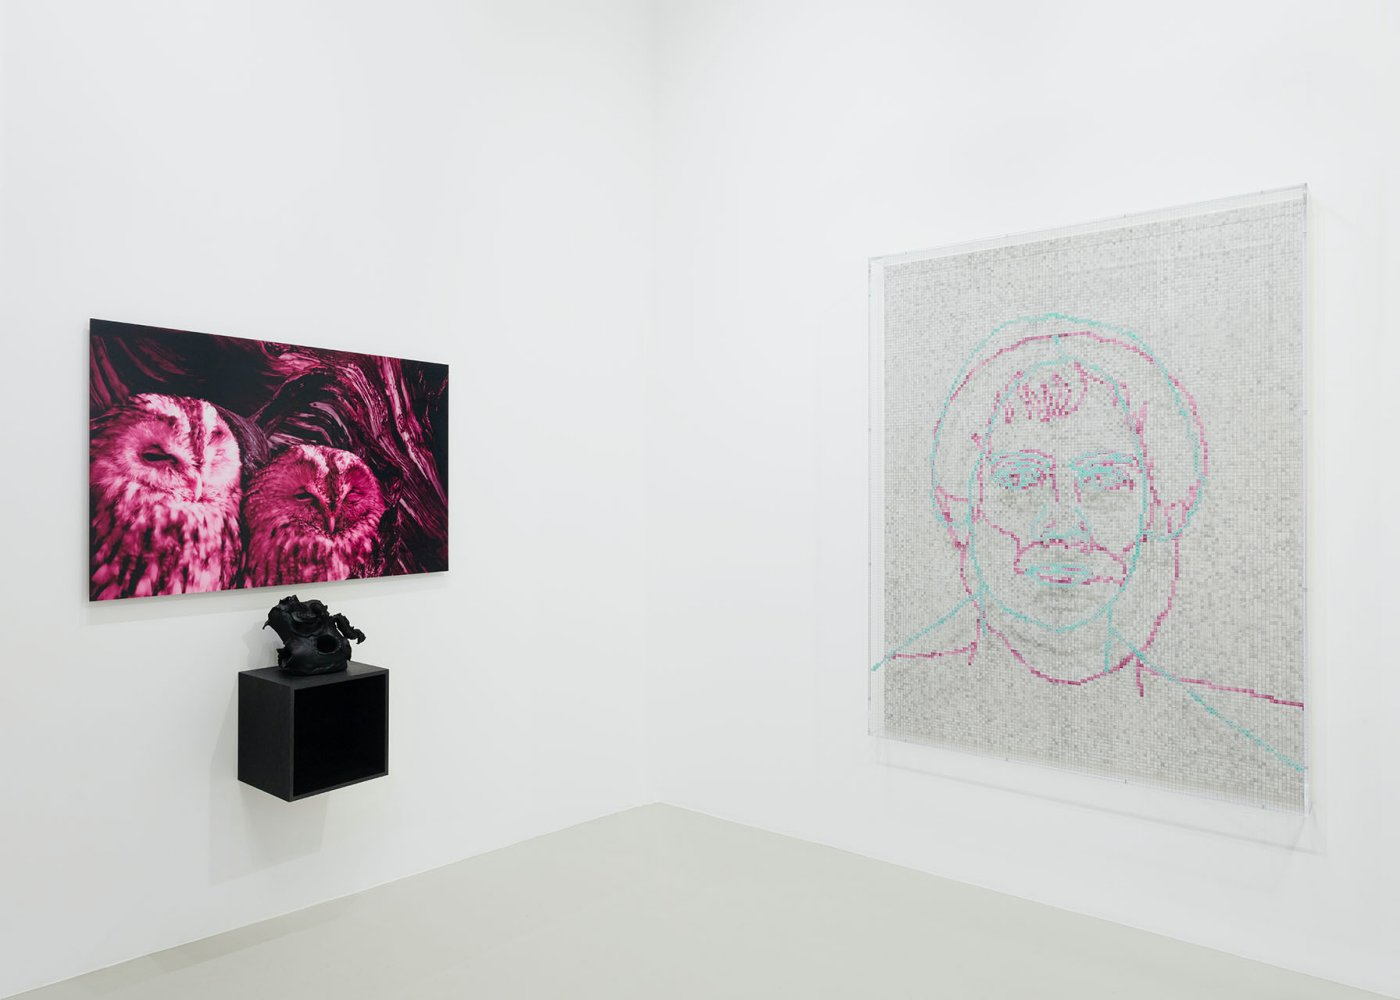 Galerie Max Hetzler FIAC at the gallery 6